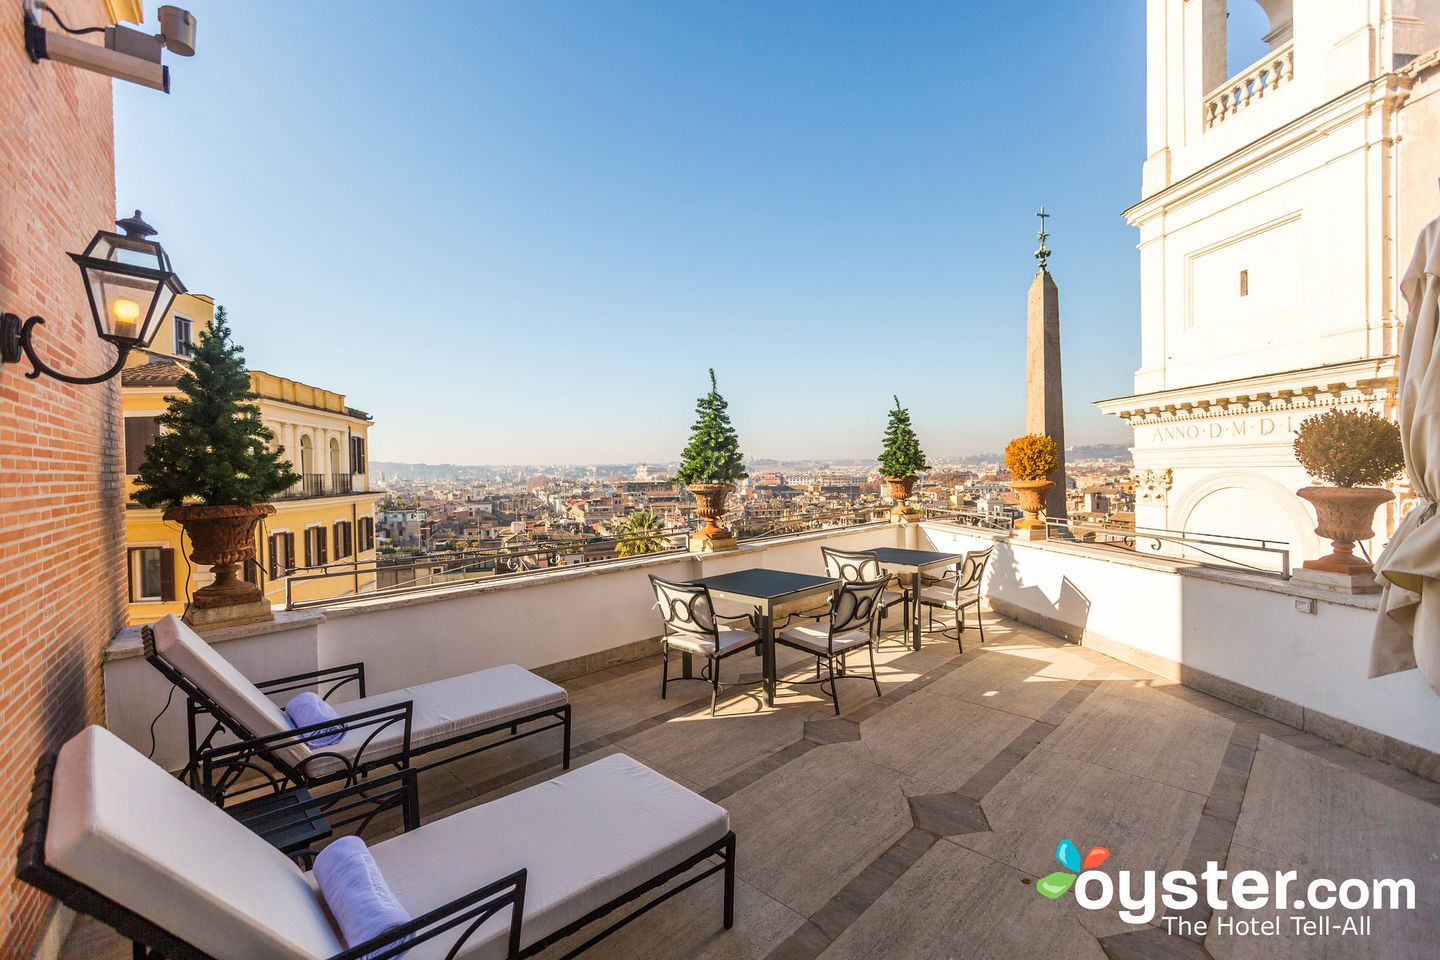 The 13 Best Luxury Hotels in Rome | Oyster.com